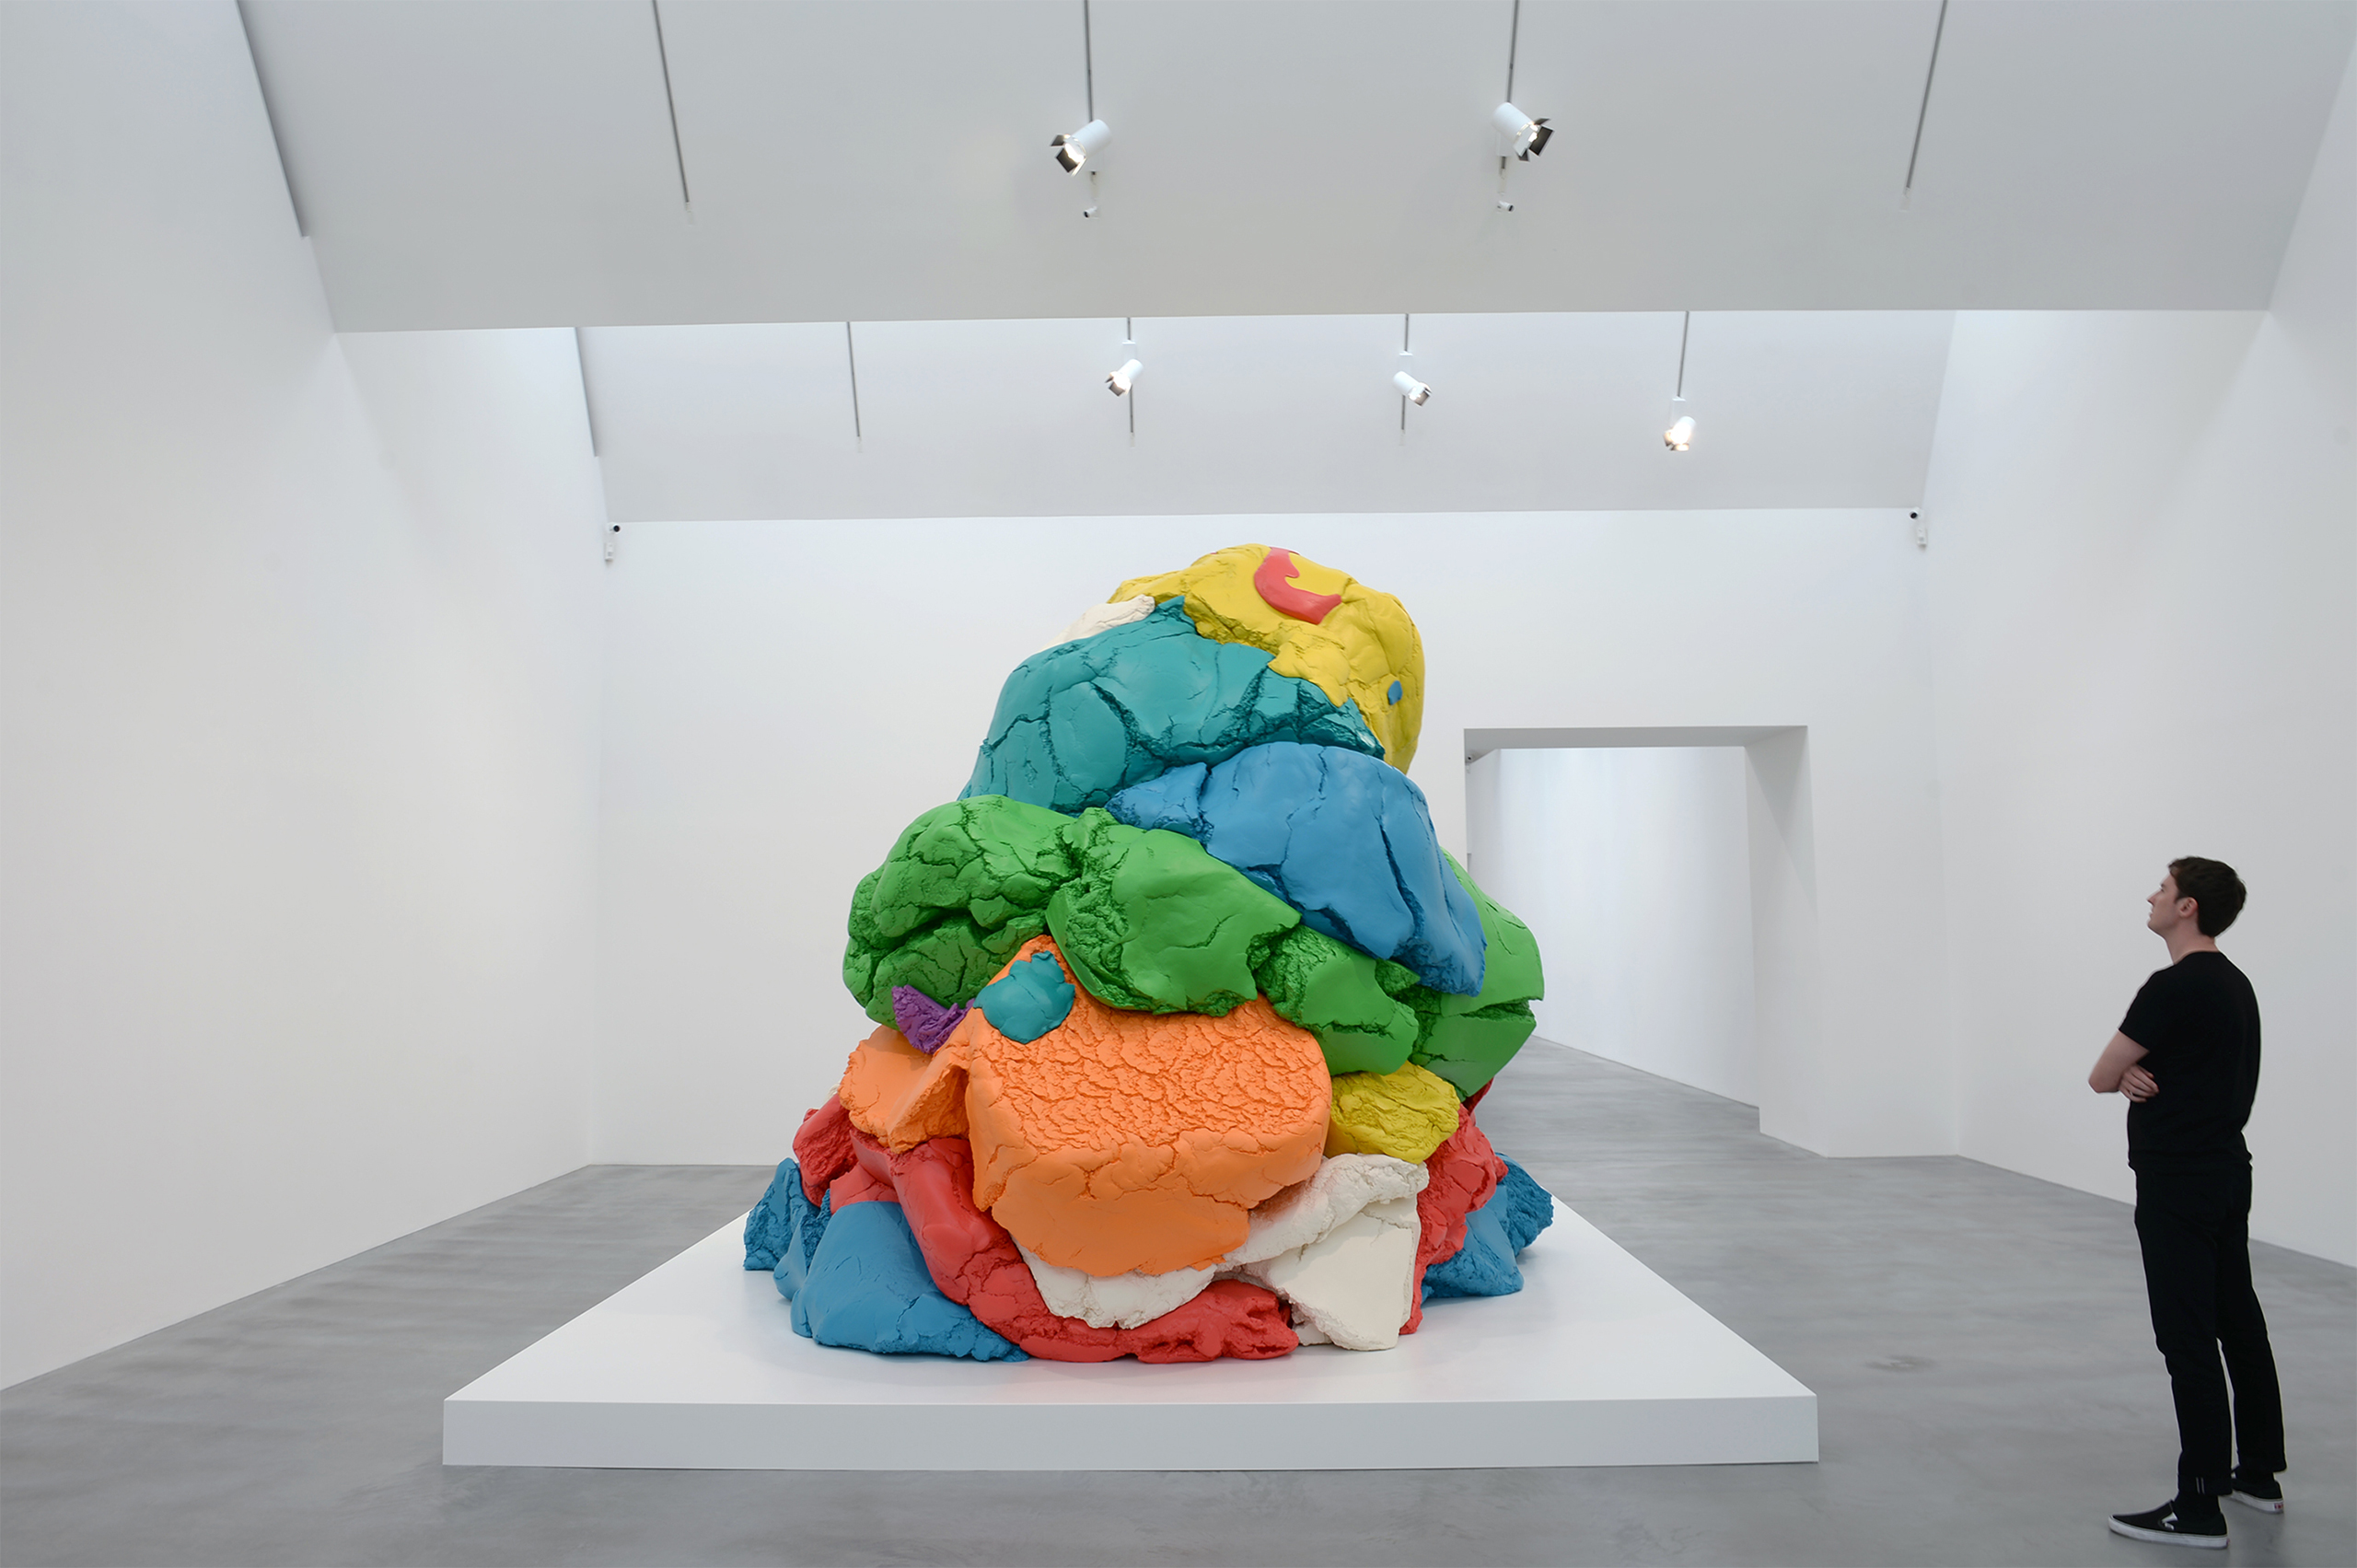 A man views Jeff Koons' sculpture  Play-Doh 1994-2014  during the opening of the Newport Street Gallery's new exhibition,  Jeff Koons: Now  in London, UK on May 17, 2016.